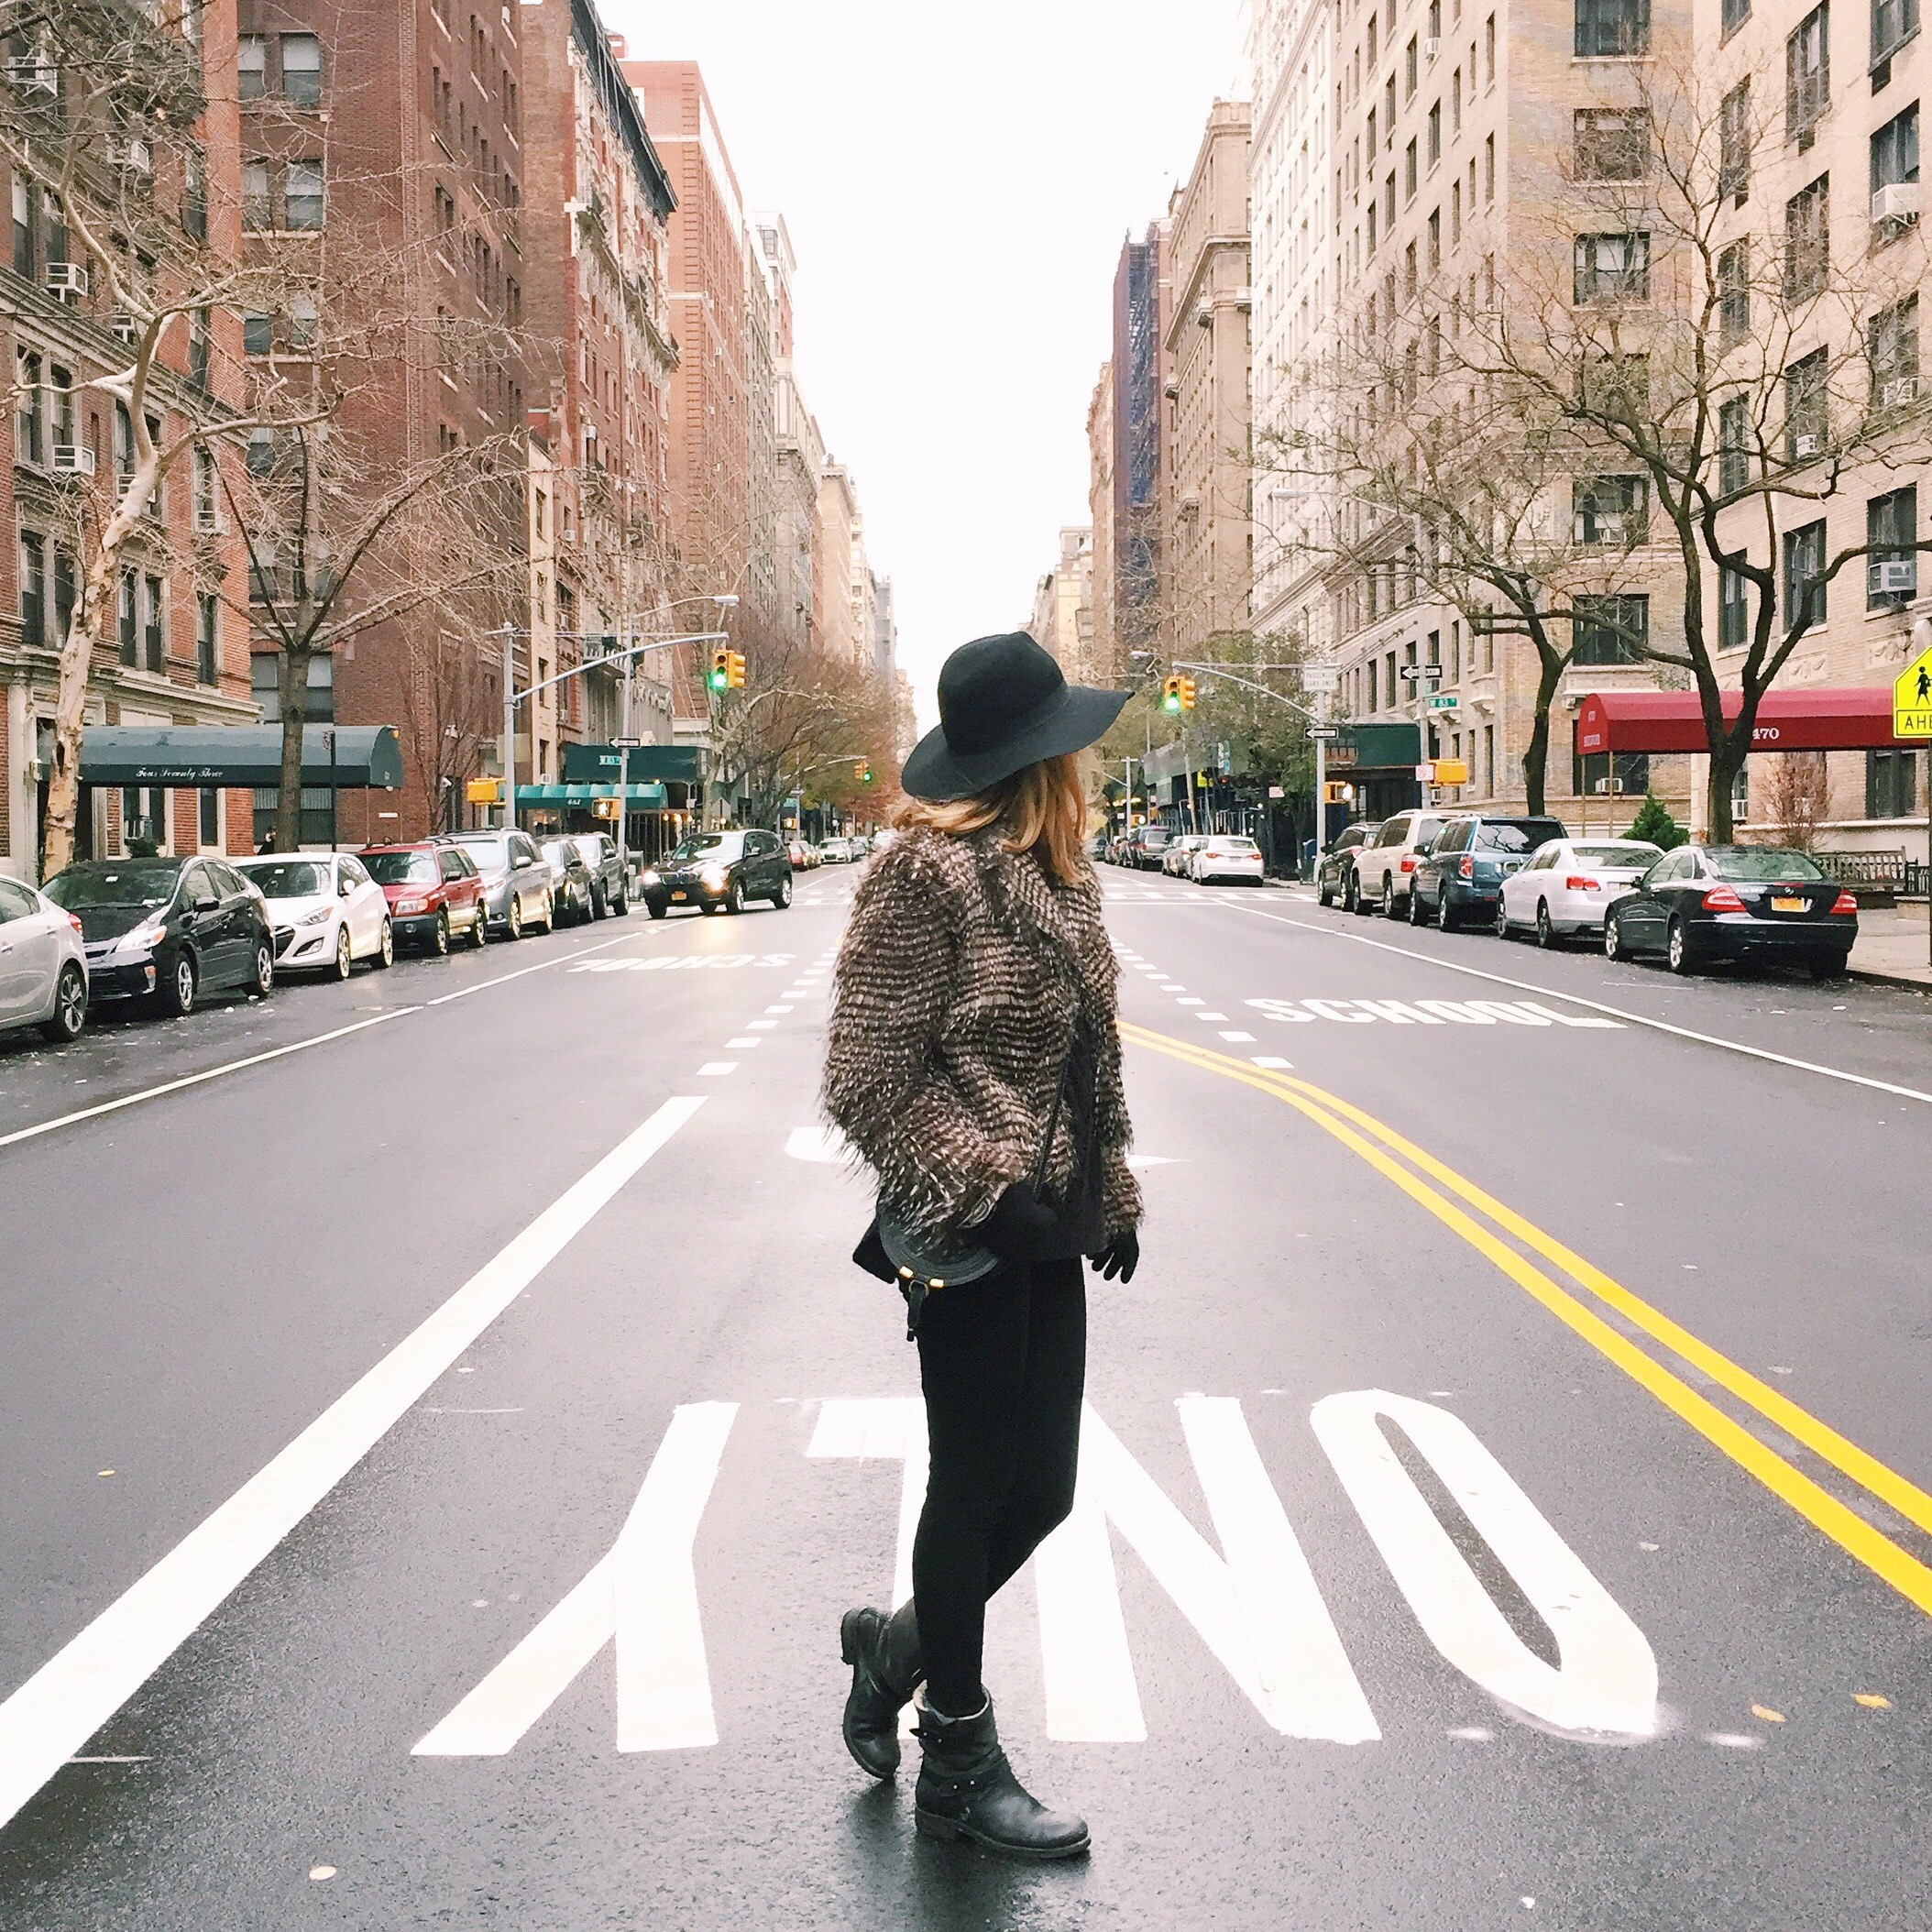 Thanksgiving day means one can actually pose in the middle of the road - Usually doesn't happen in NYC :)